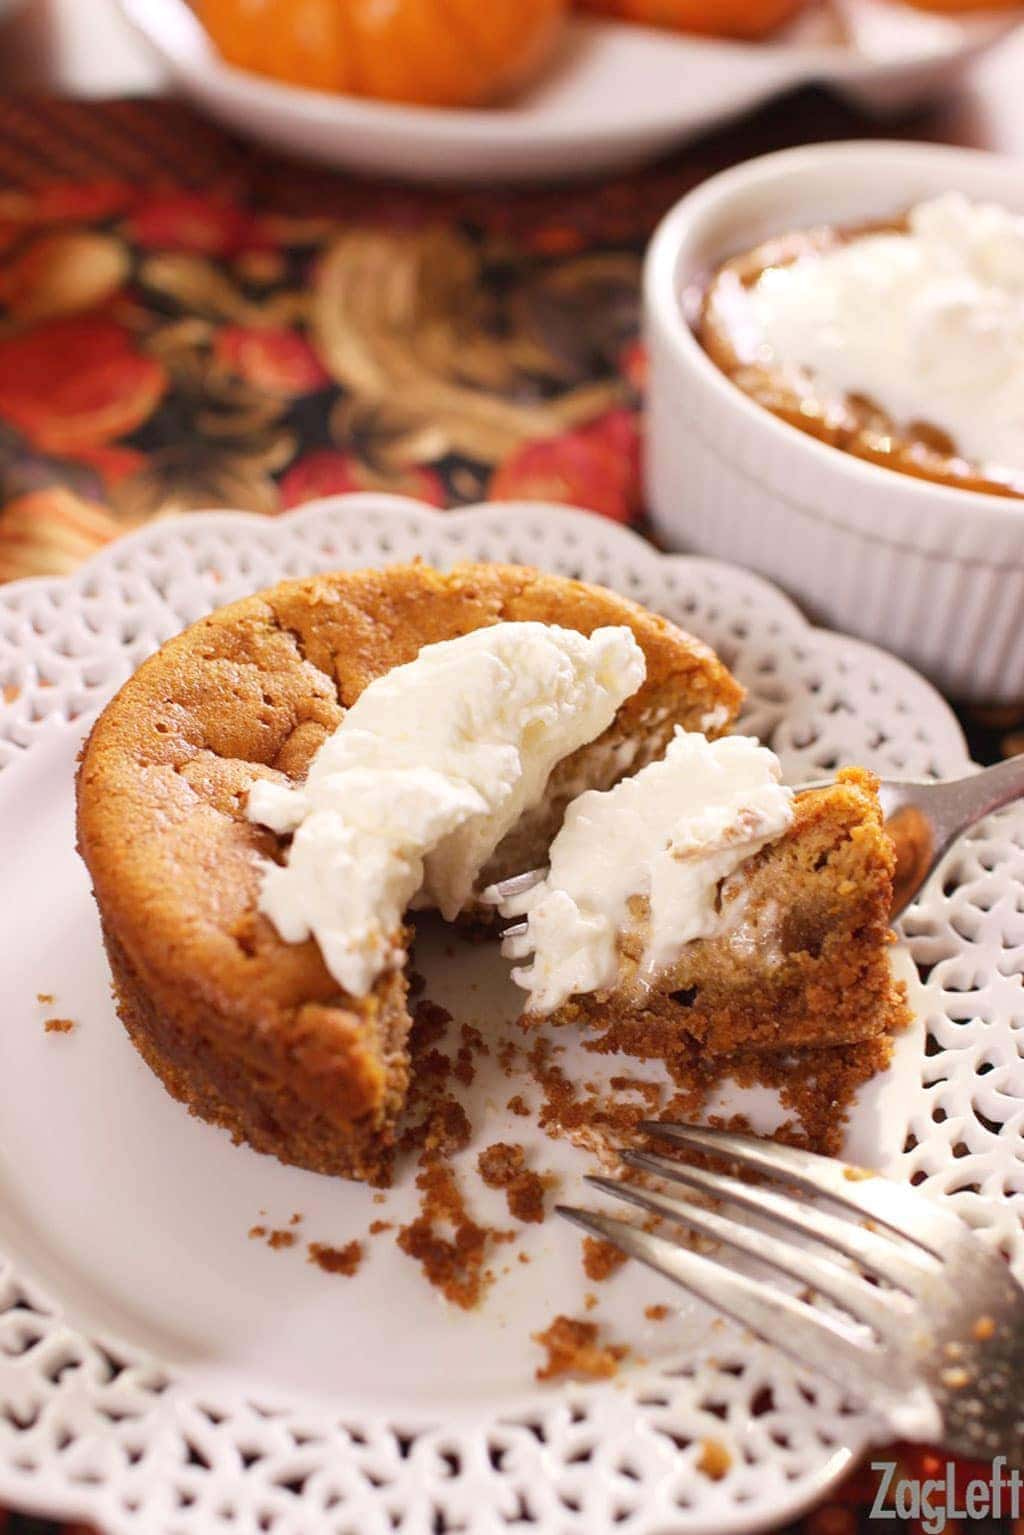 A forkful of pumpkin pie topped with whipped cream on a plate and another pumpkin pie in a ramekin topped with whipped cream in the background